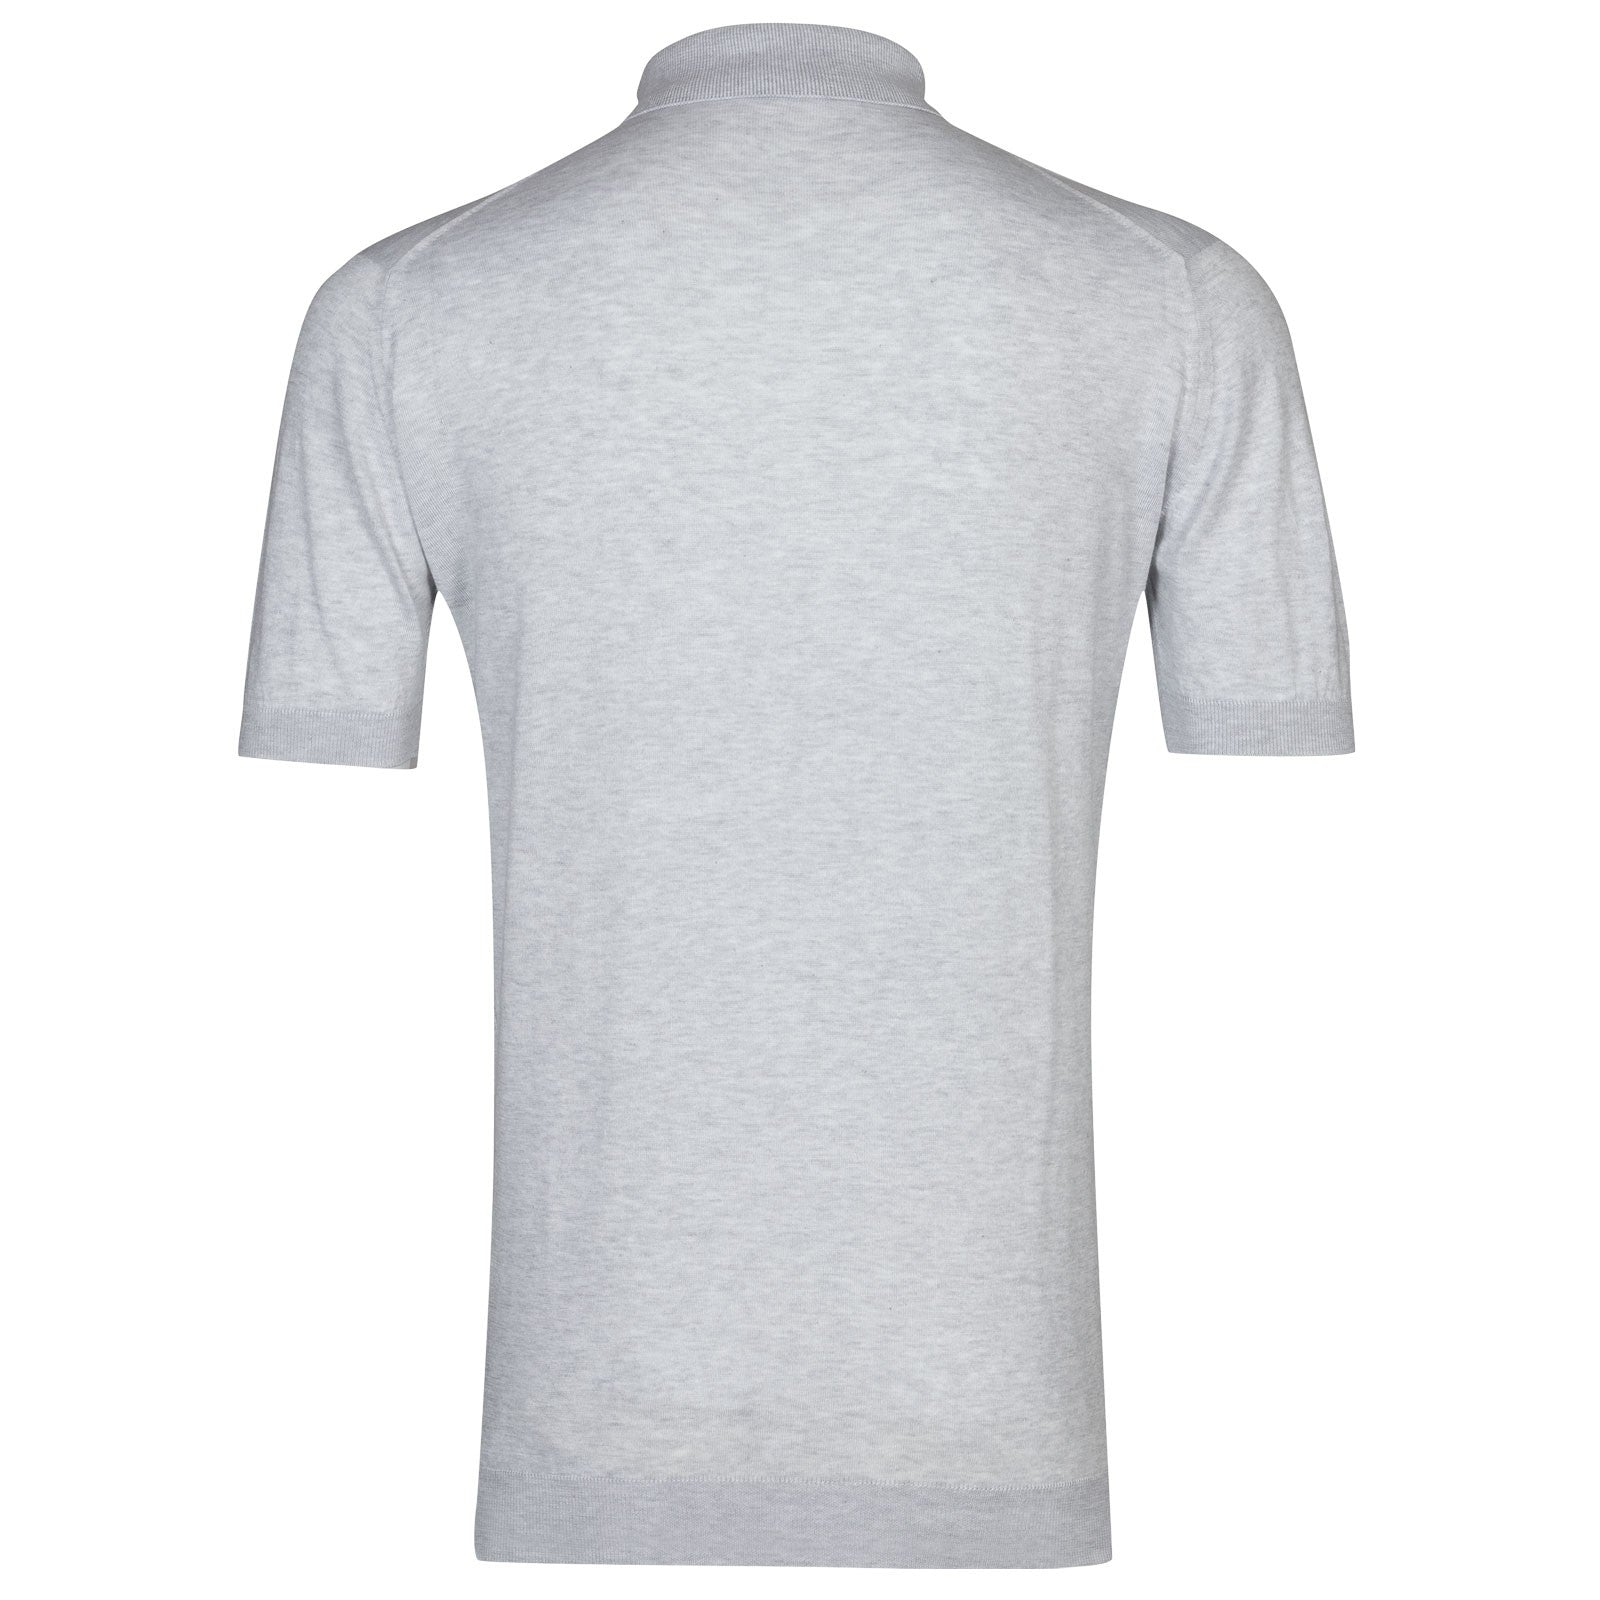 Adrian Feather Grey Sea Island Cotton Polo Shirt